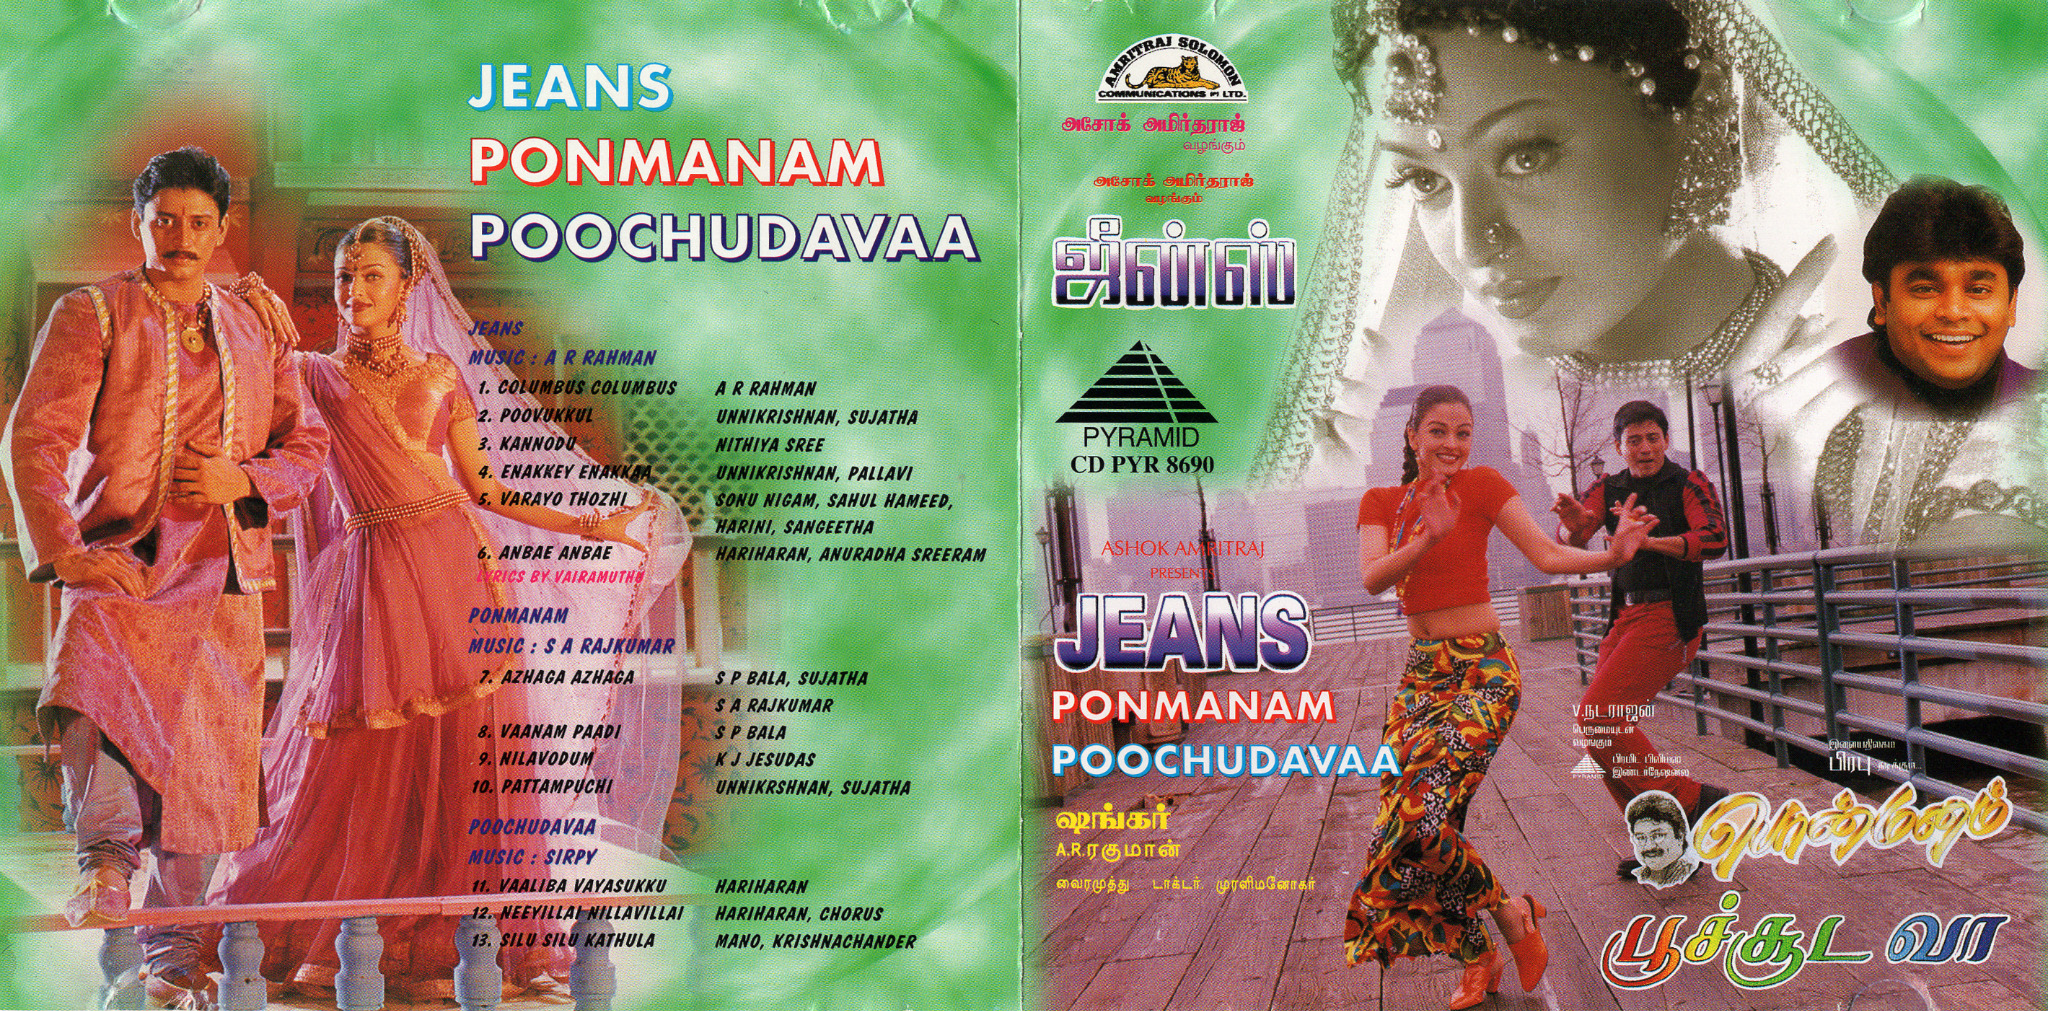 Jeans - Ponmanam